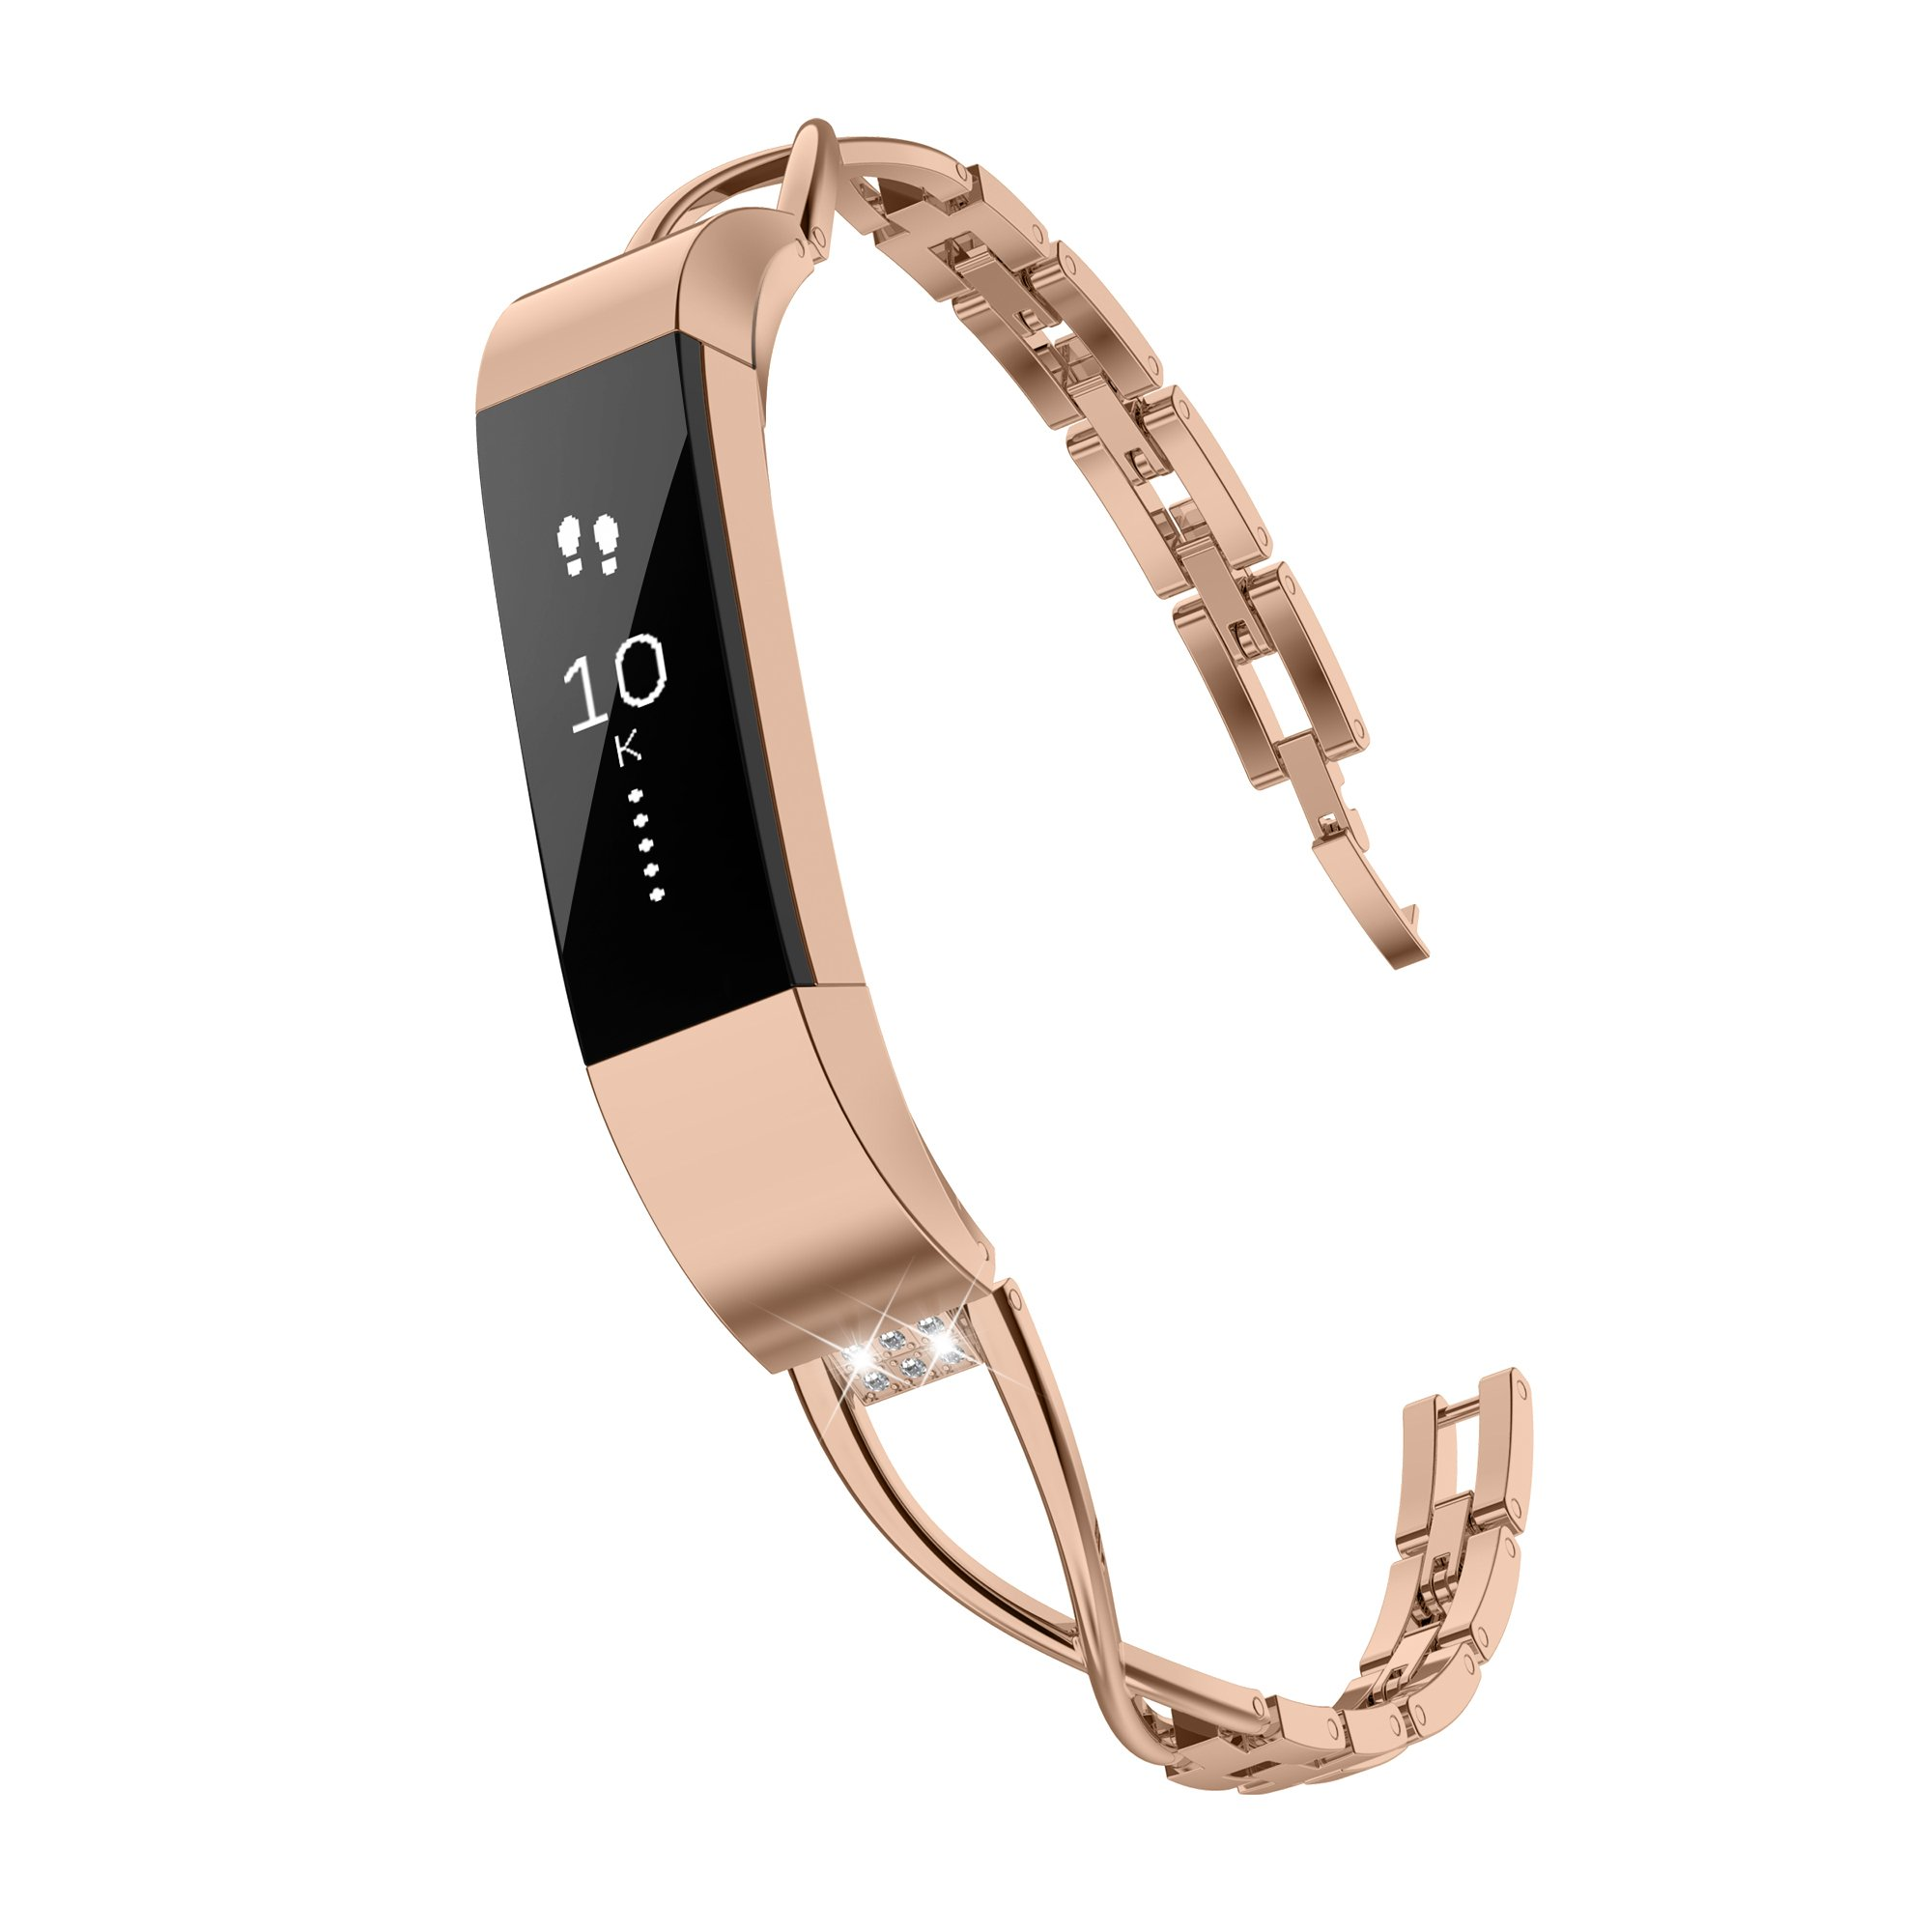 TOYOUTHS Compatible with Fitbit Alta Bands and Fitbit Alta HR Bands, Rhinestone Replacement Bands Accessories Straps Wrist Bands for Women, Rose Gold by TOYOUTHS